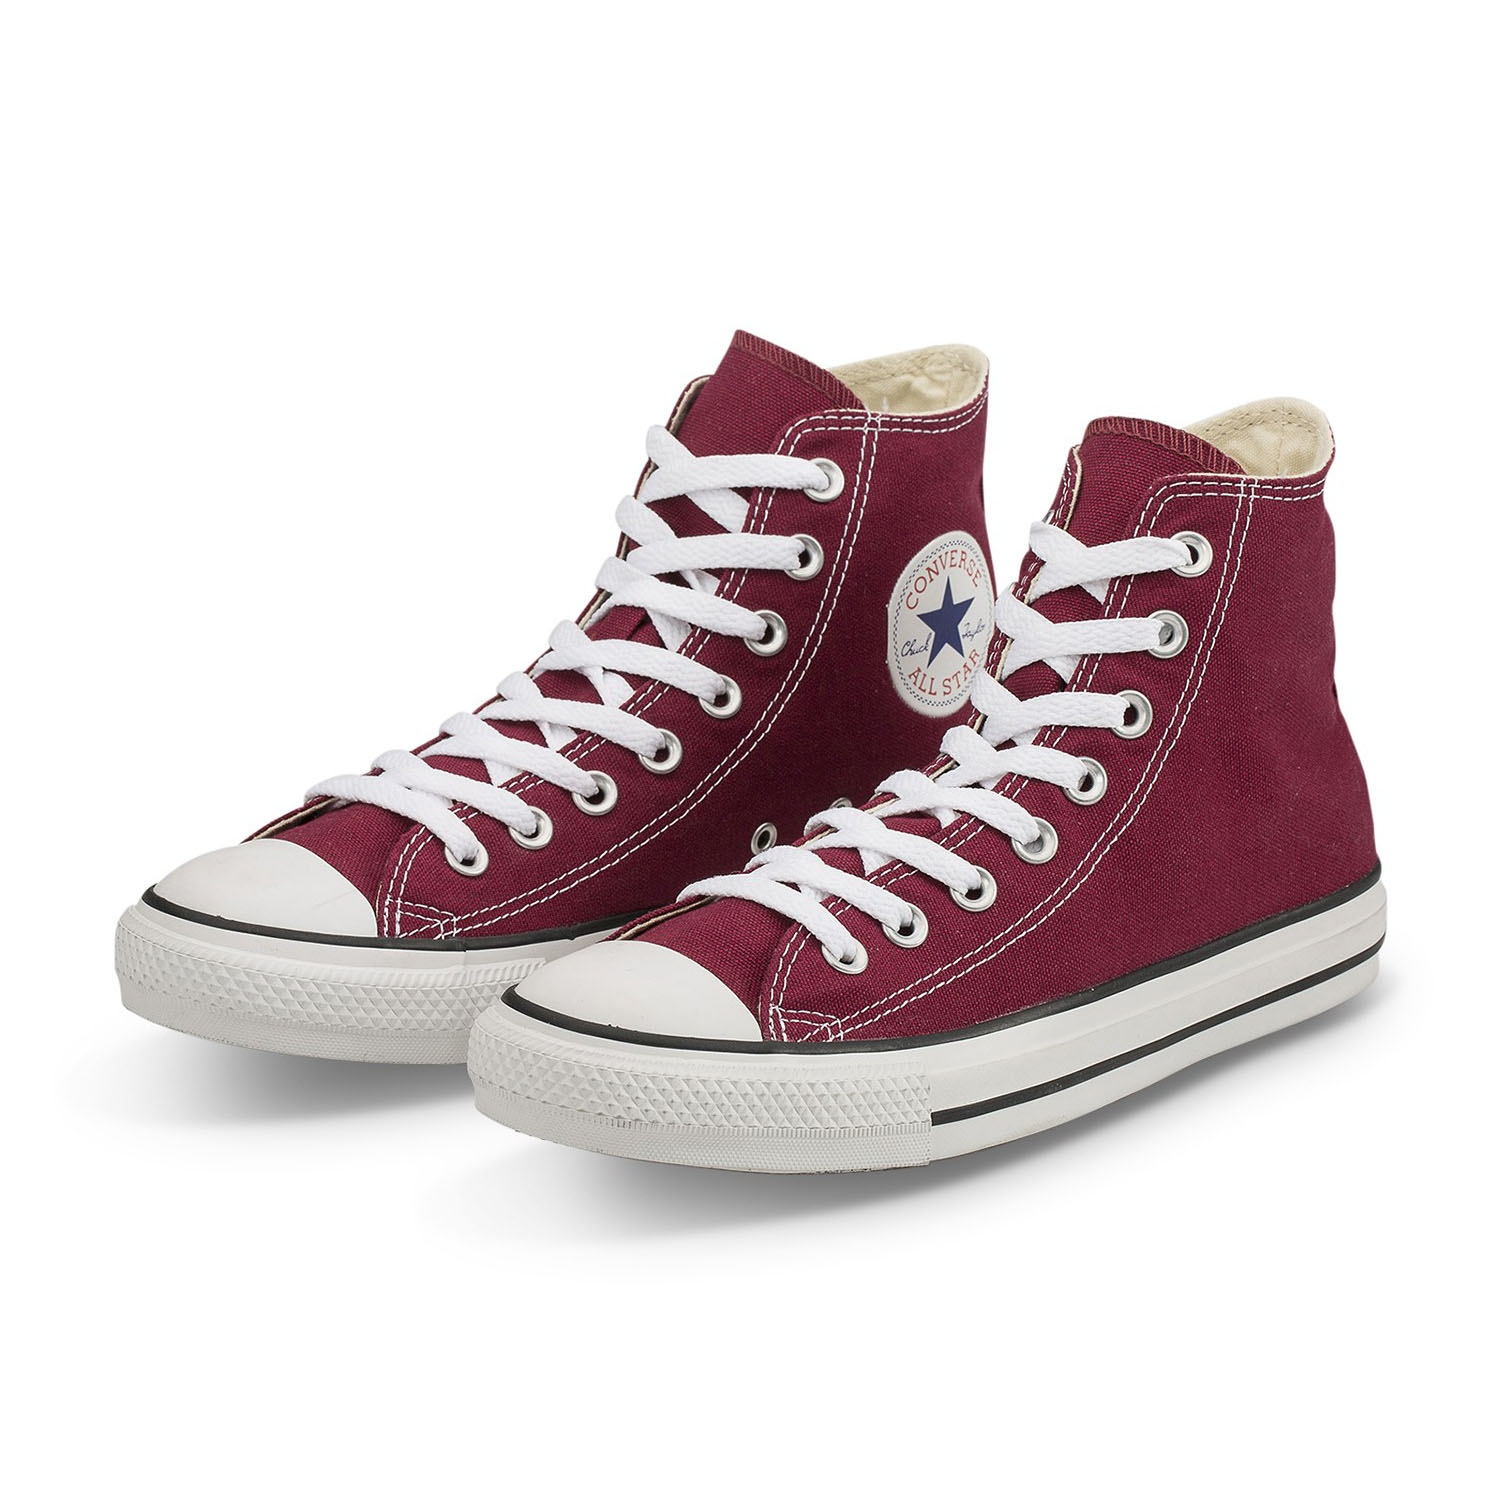 2b21c857e776 Converse Chuck Taylor All Star High Top Burgundy - Spinners Sports